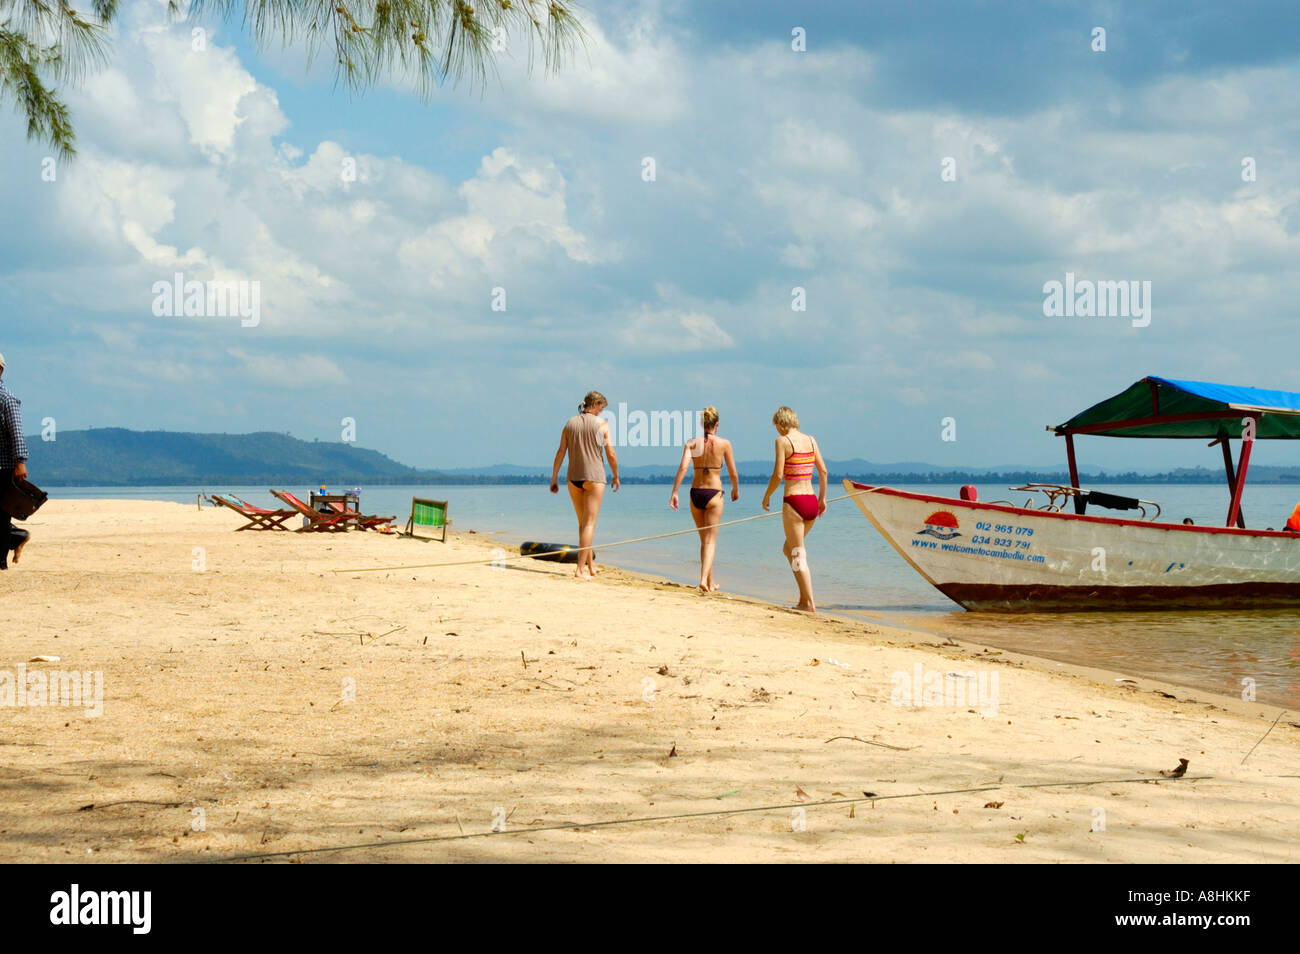 Three young lean women at a sandy beach with a boat Bamboo Island Sihanoukville Kompong Som Cambodia - Stock Image